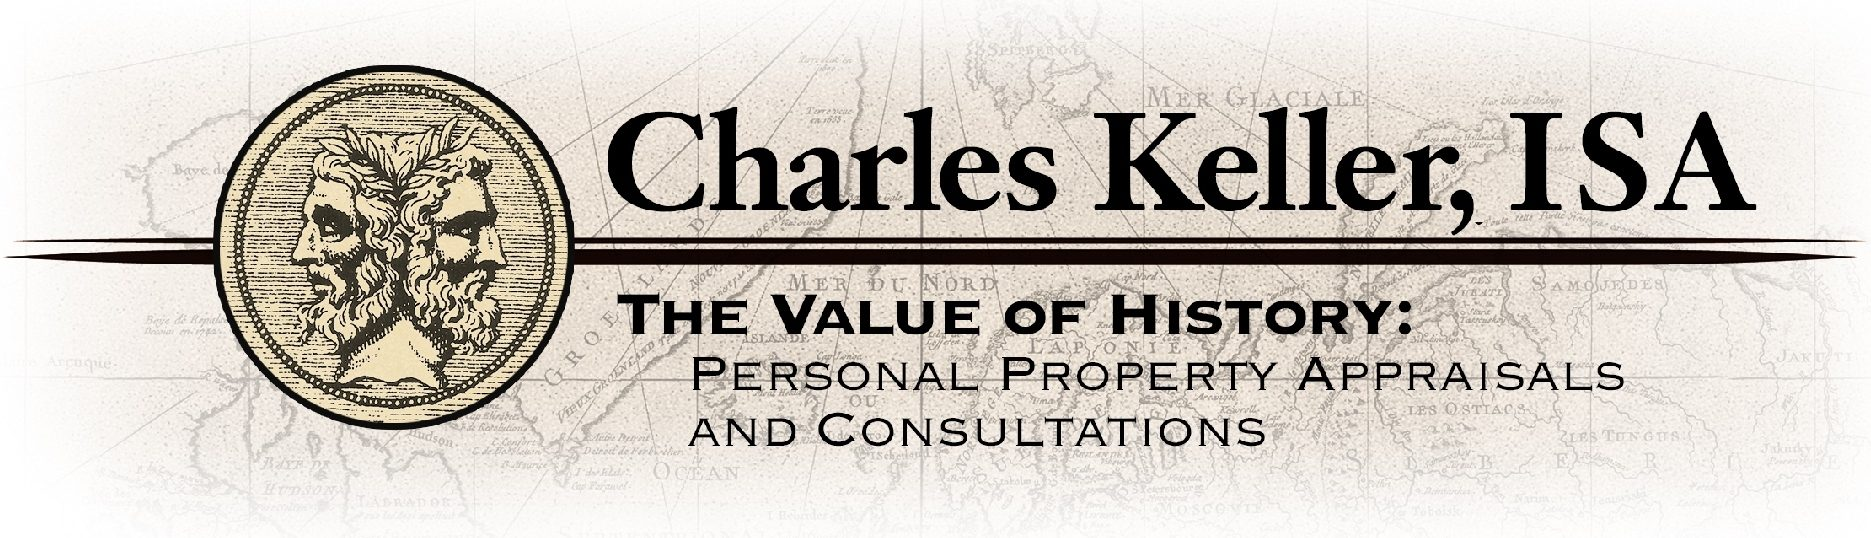 Kansas City Appraiser of Art, Books, Antiques & Estates